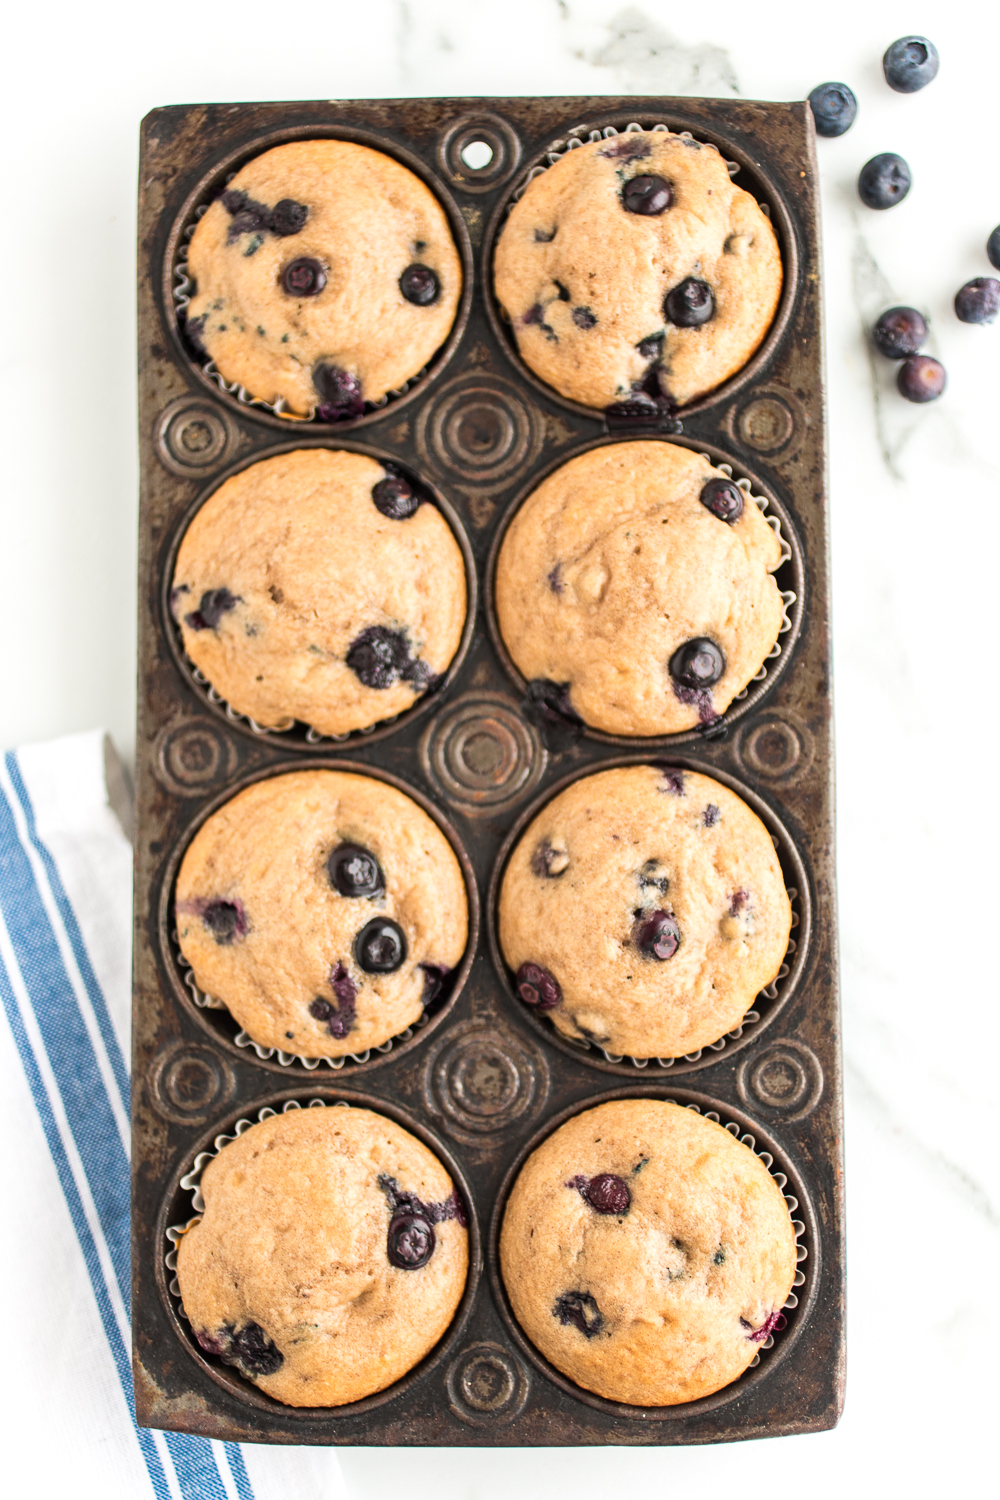 Blueberry Greek Yogurt Muffins are a delicious muffin recipe perfect for breakfast, after school, and just as a treat! The blueberries and blueberry greek yogurt gives it a great blueberry flavor!